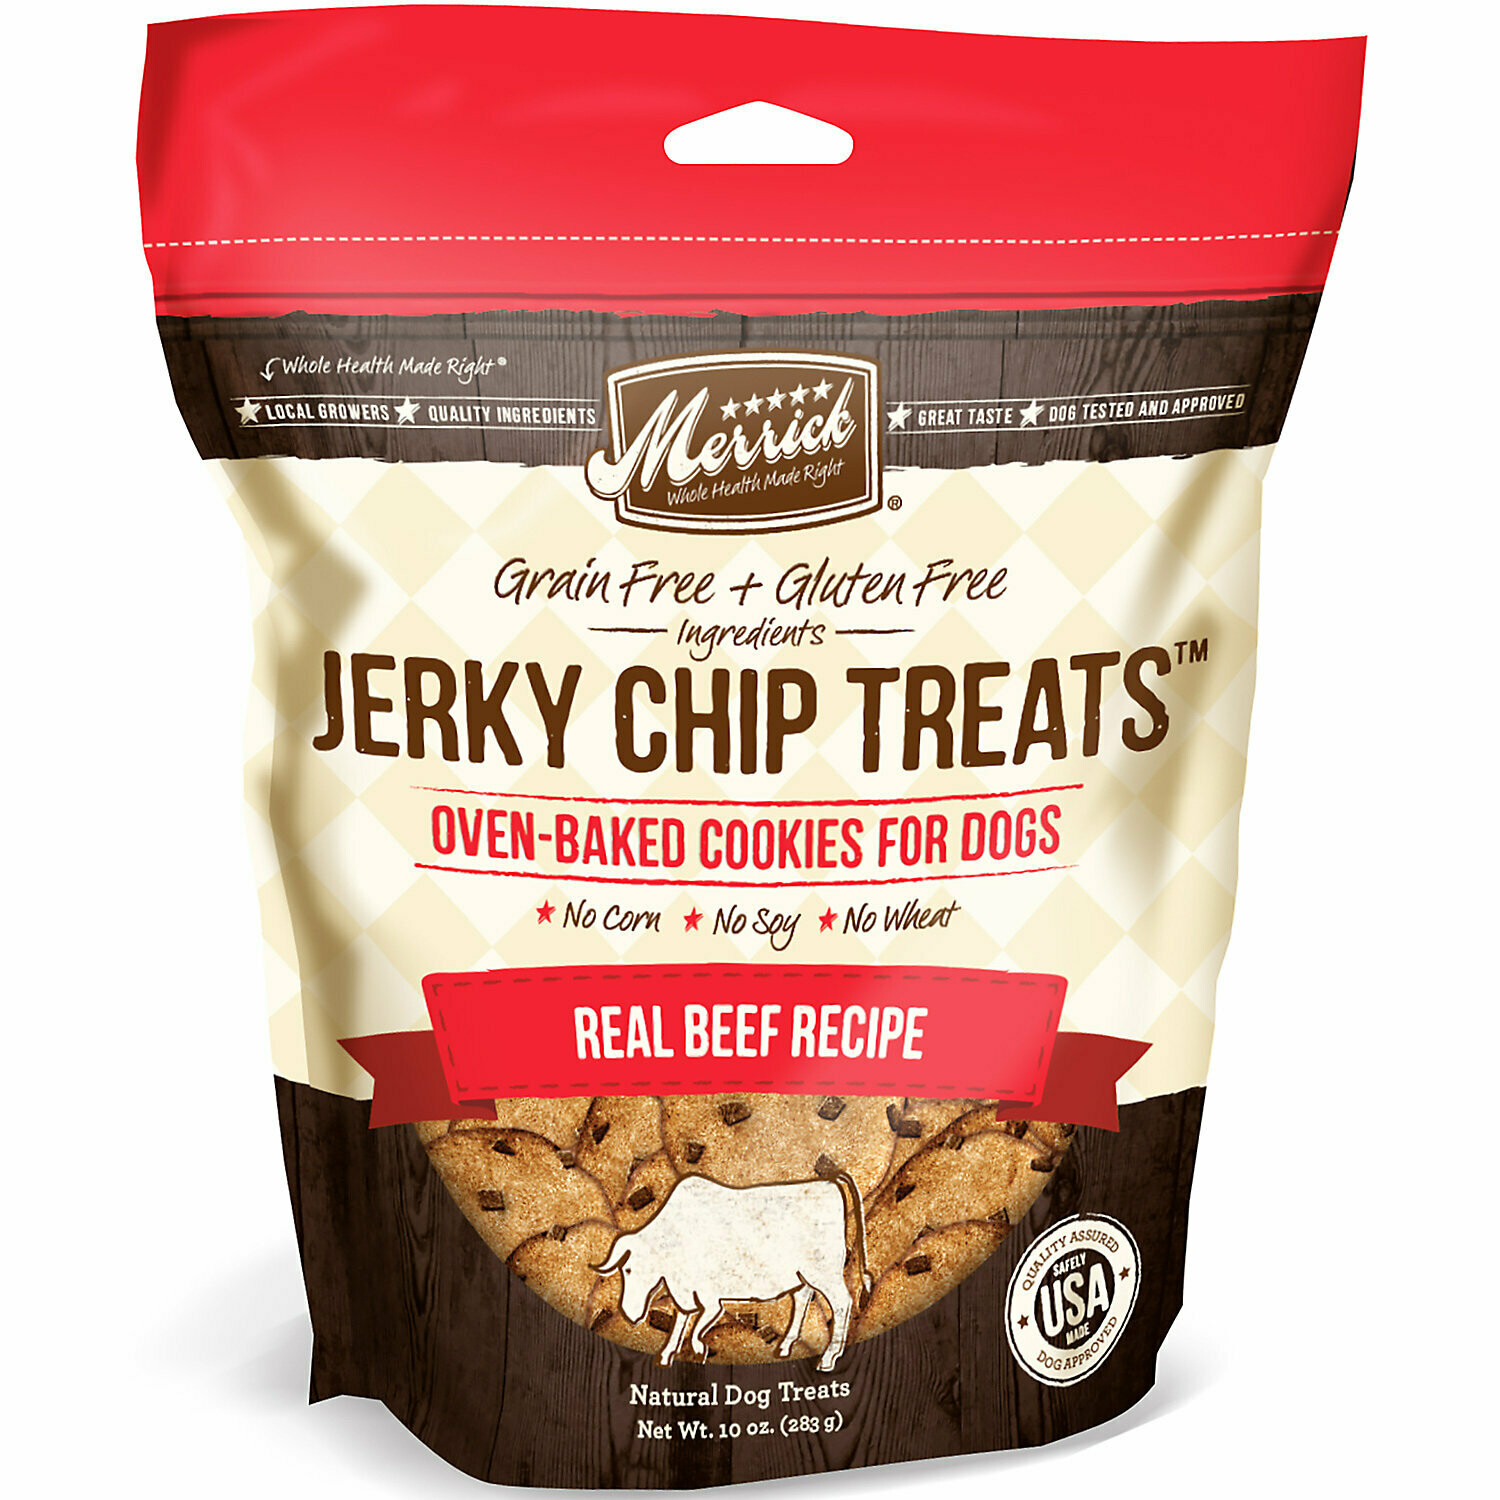 Merrick grain-free plus gluten-free ingredients jerky chip treats oven-baked cookies for dogs no corn and soy or wheat -  real beef recipe 10 ounces (6/19)